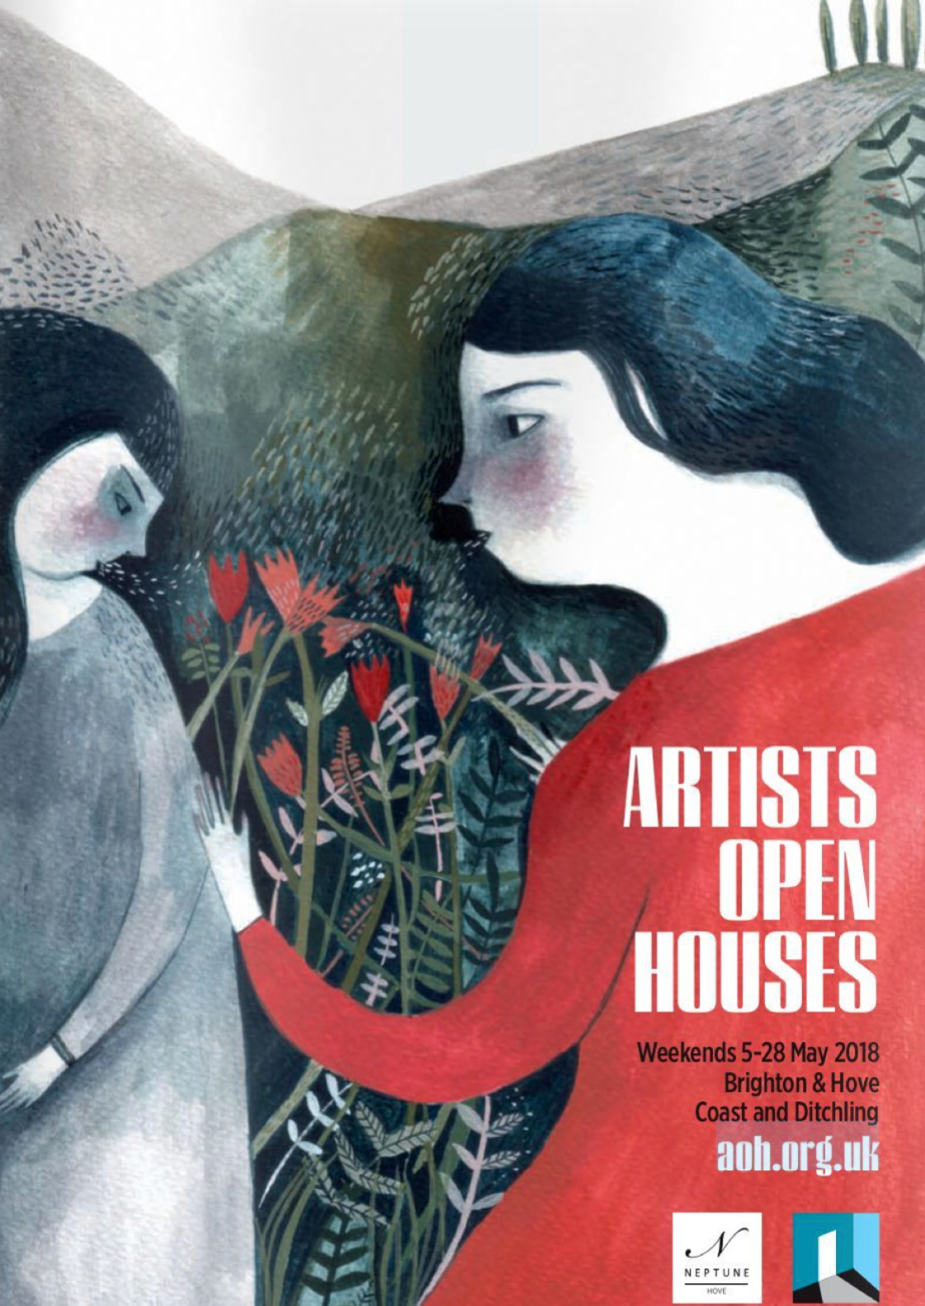 - Exhibition Dates: 5 - 28th May 2018Artists Open Houses: This May over 200 artists' homes and studios are opening their doors to exhibit work from over 1,000 artists and makers in Brighton and Hove, reaching from Portslade to Kemptown, out to Rottingdean, Newhaven and the South Downs village of Ditchling.Plan your visit around the 13 individual trails shown on the AOH website, or take your pick from the wealth of Open Houses on offer.https://aoh.org.ukhttps://www.brightonfringe.org